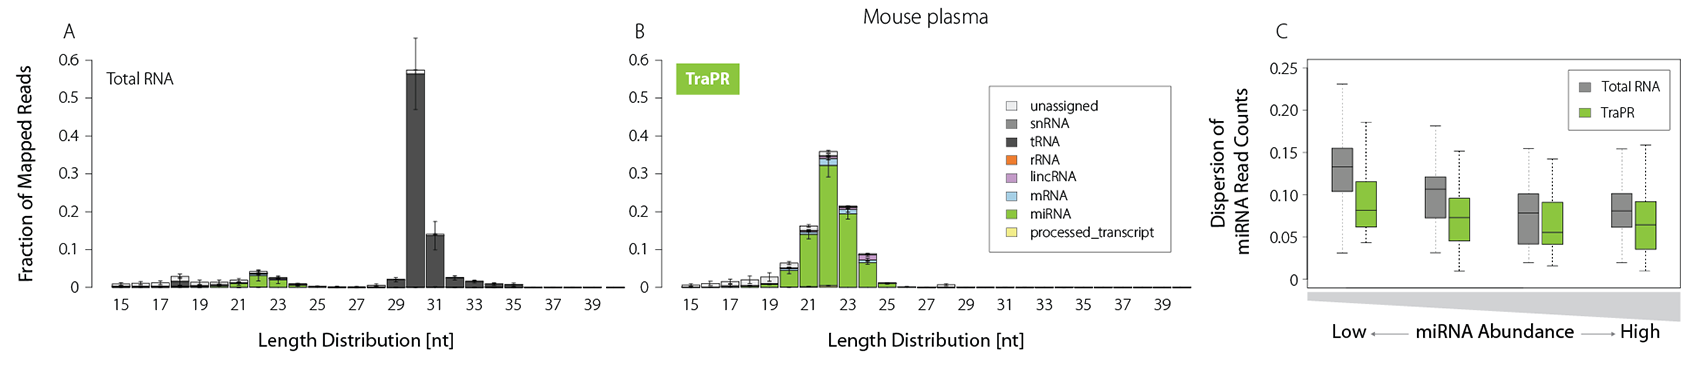 044_TraPR _Length distribution and dispersion-mouse plasma_V0101